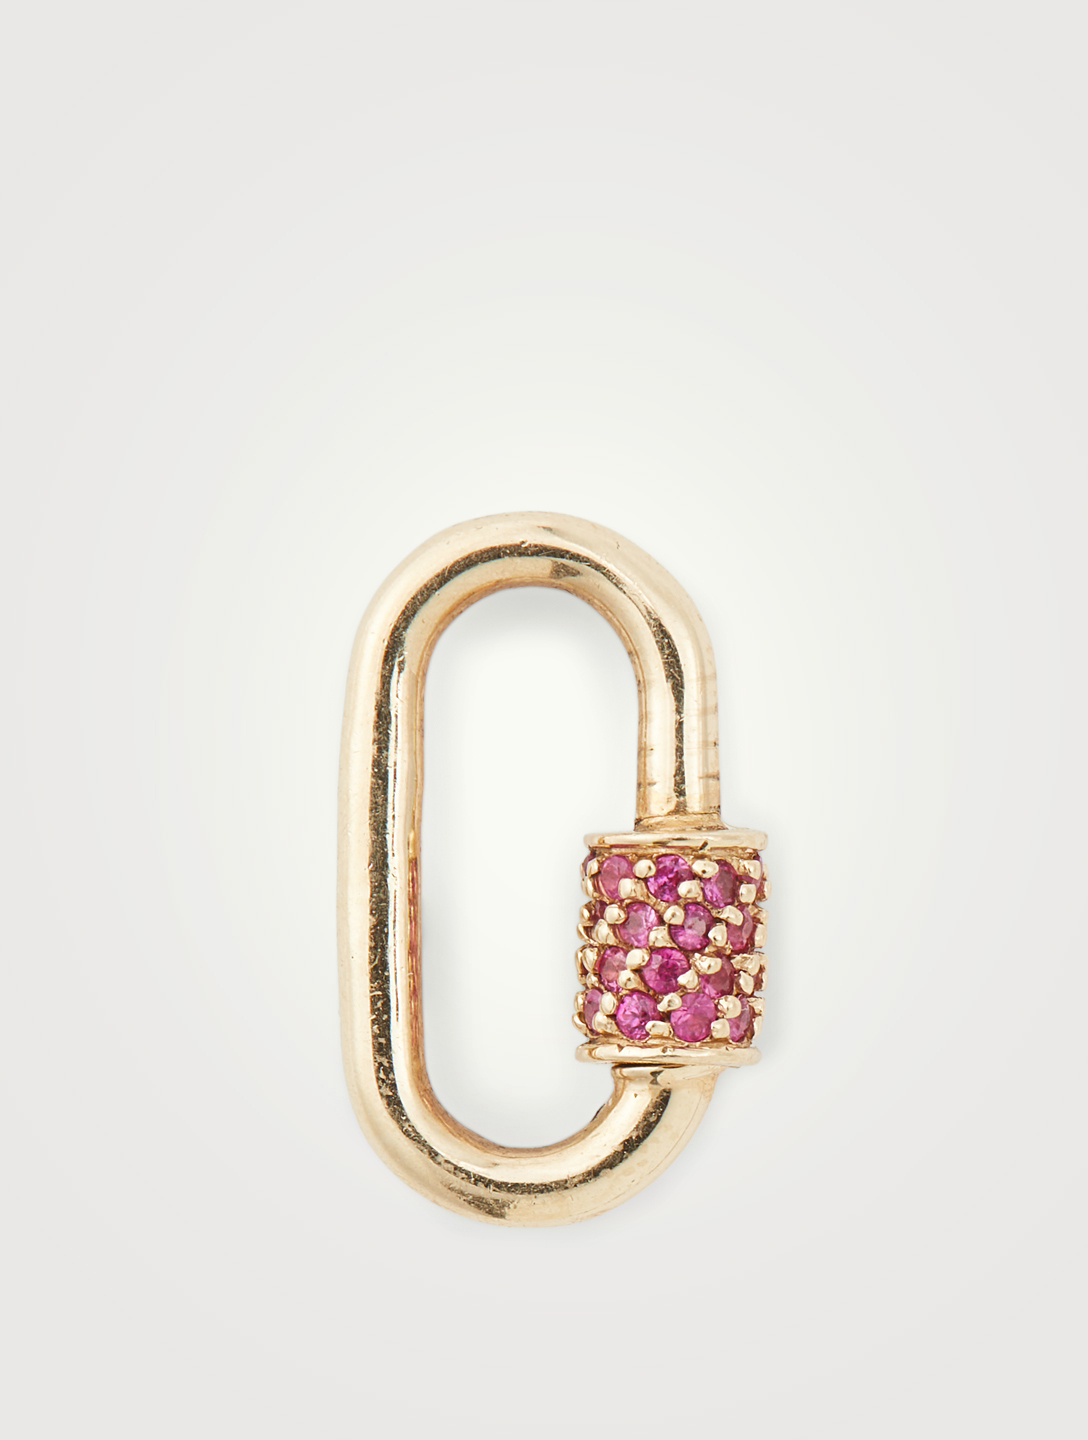 MARLA AARON 14K Yellow Gold Baby Lock With Pink Sapphire Women's Metallic